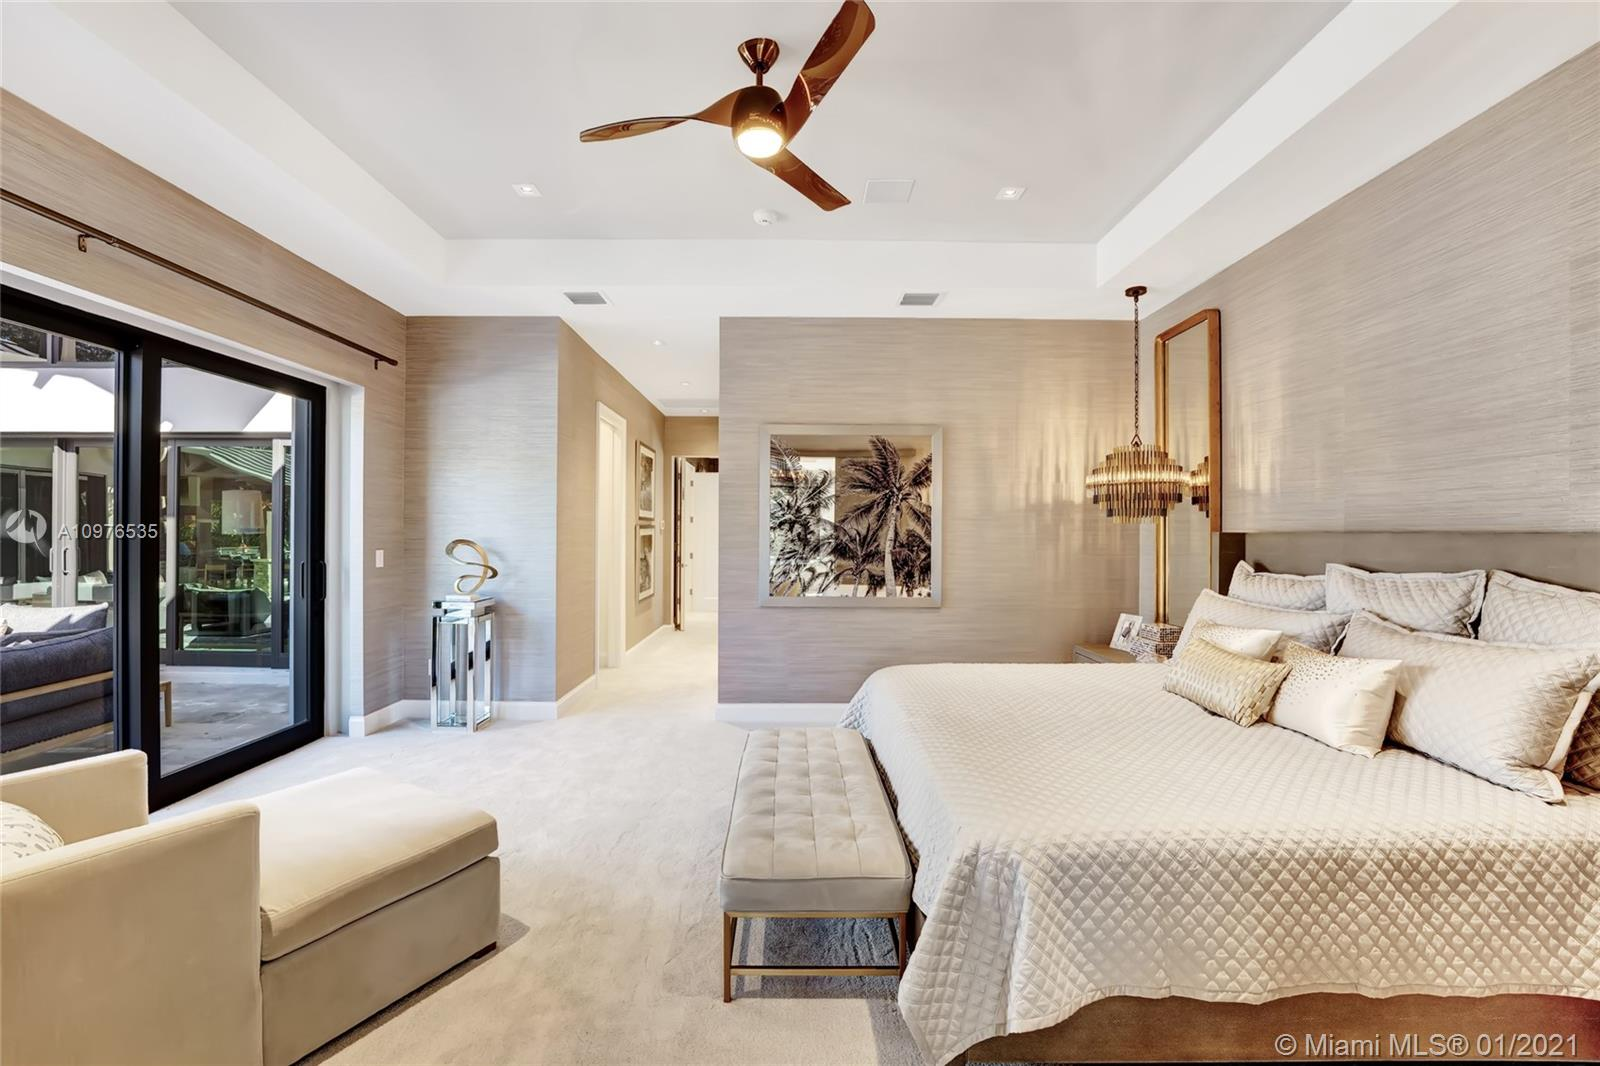 The master bedroom is adorned hand made burlap wall covering and is professionally decorated throughout.